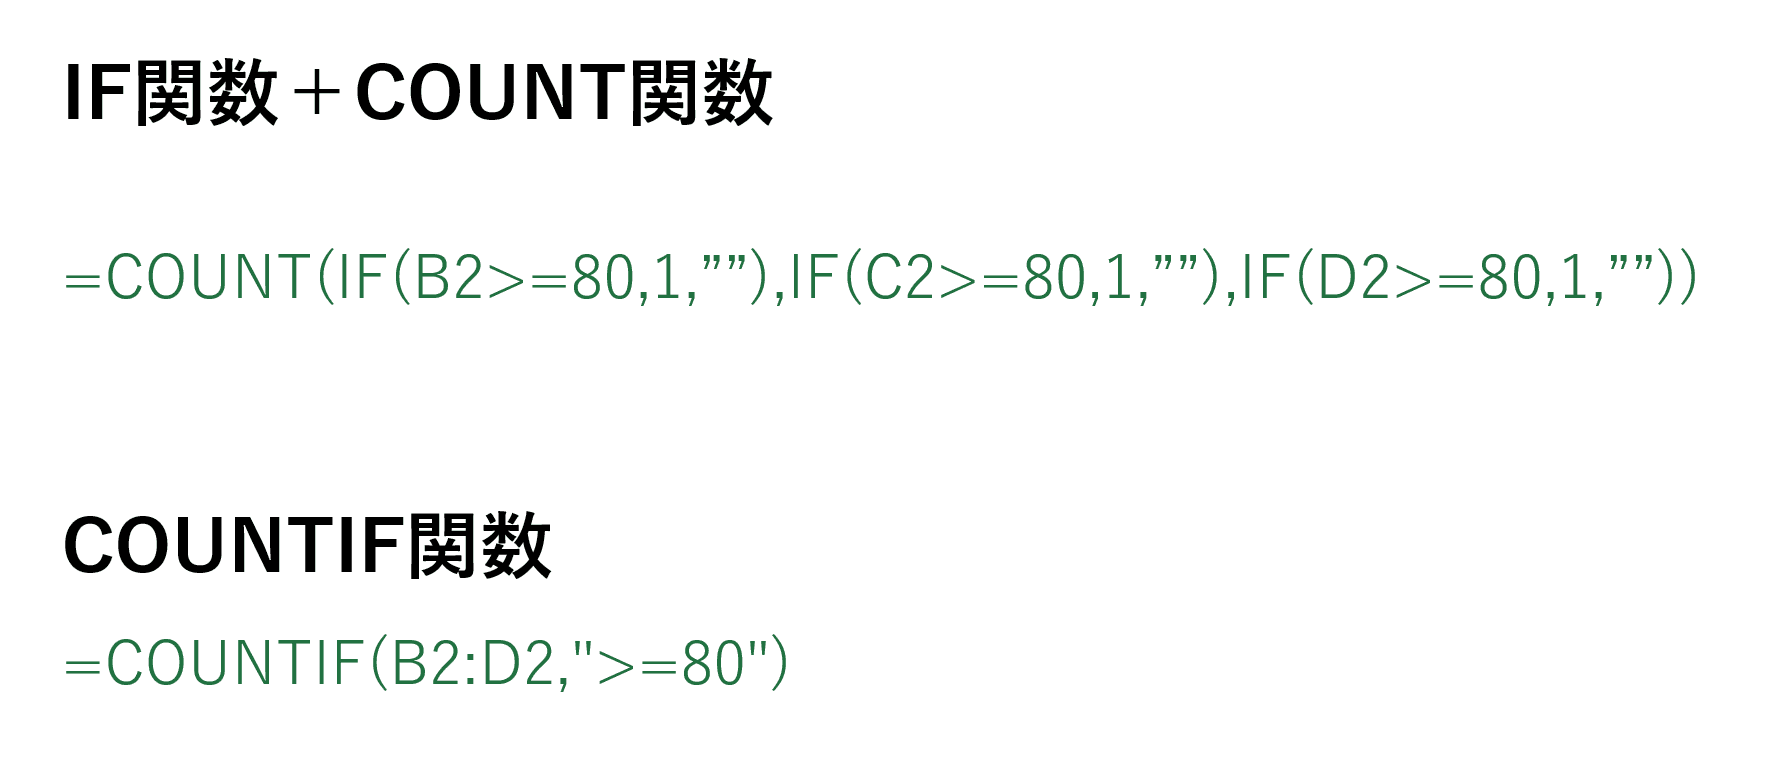 COUNTIF関数